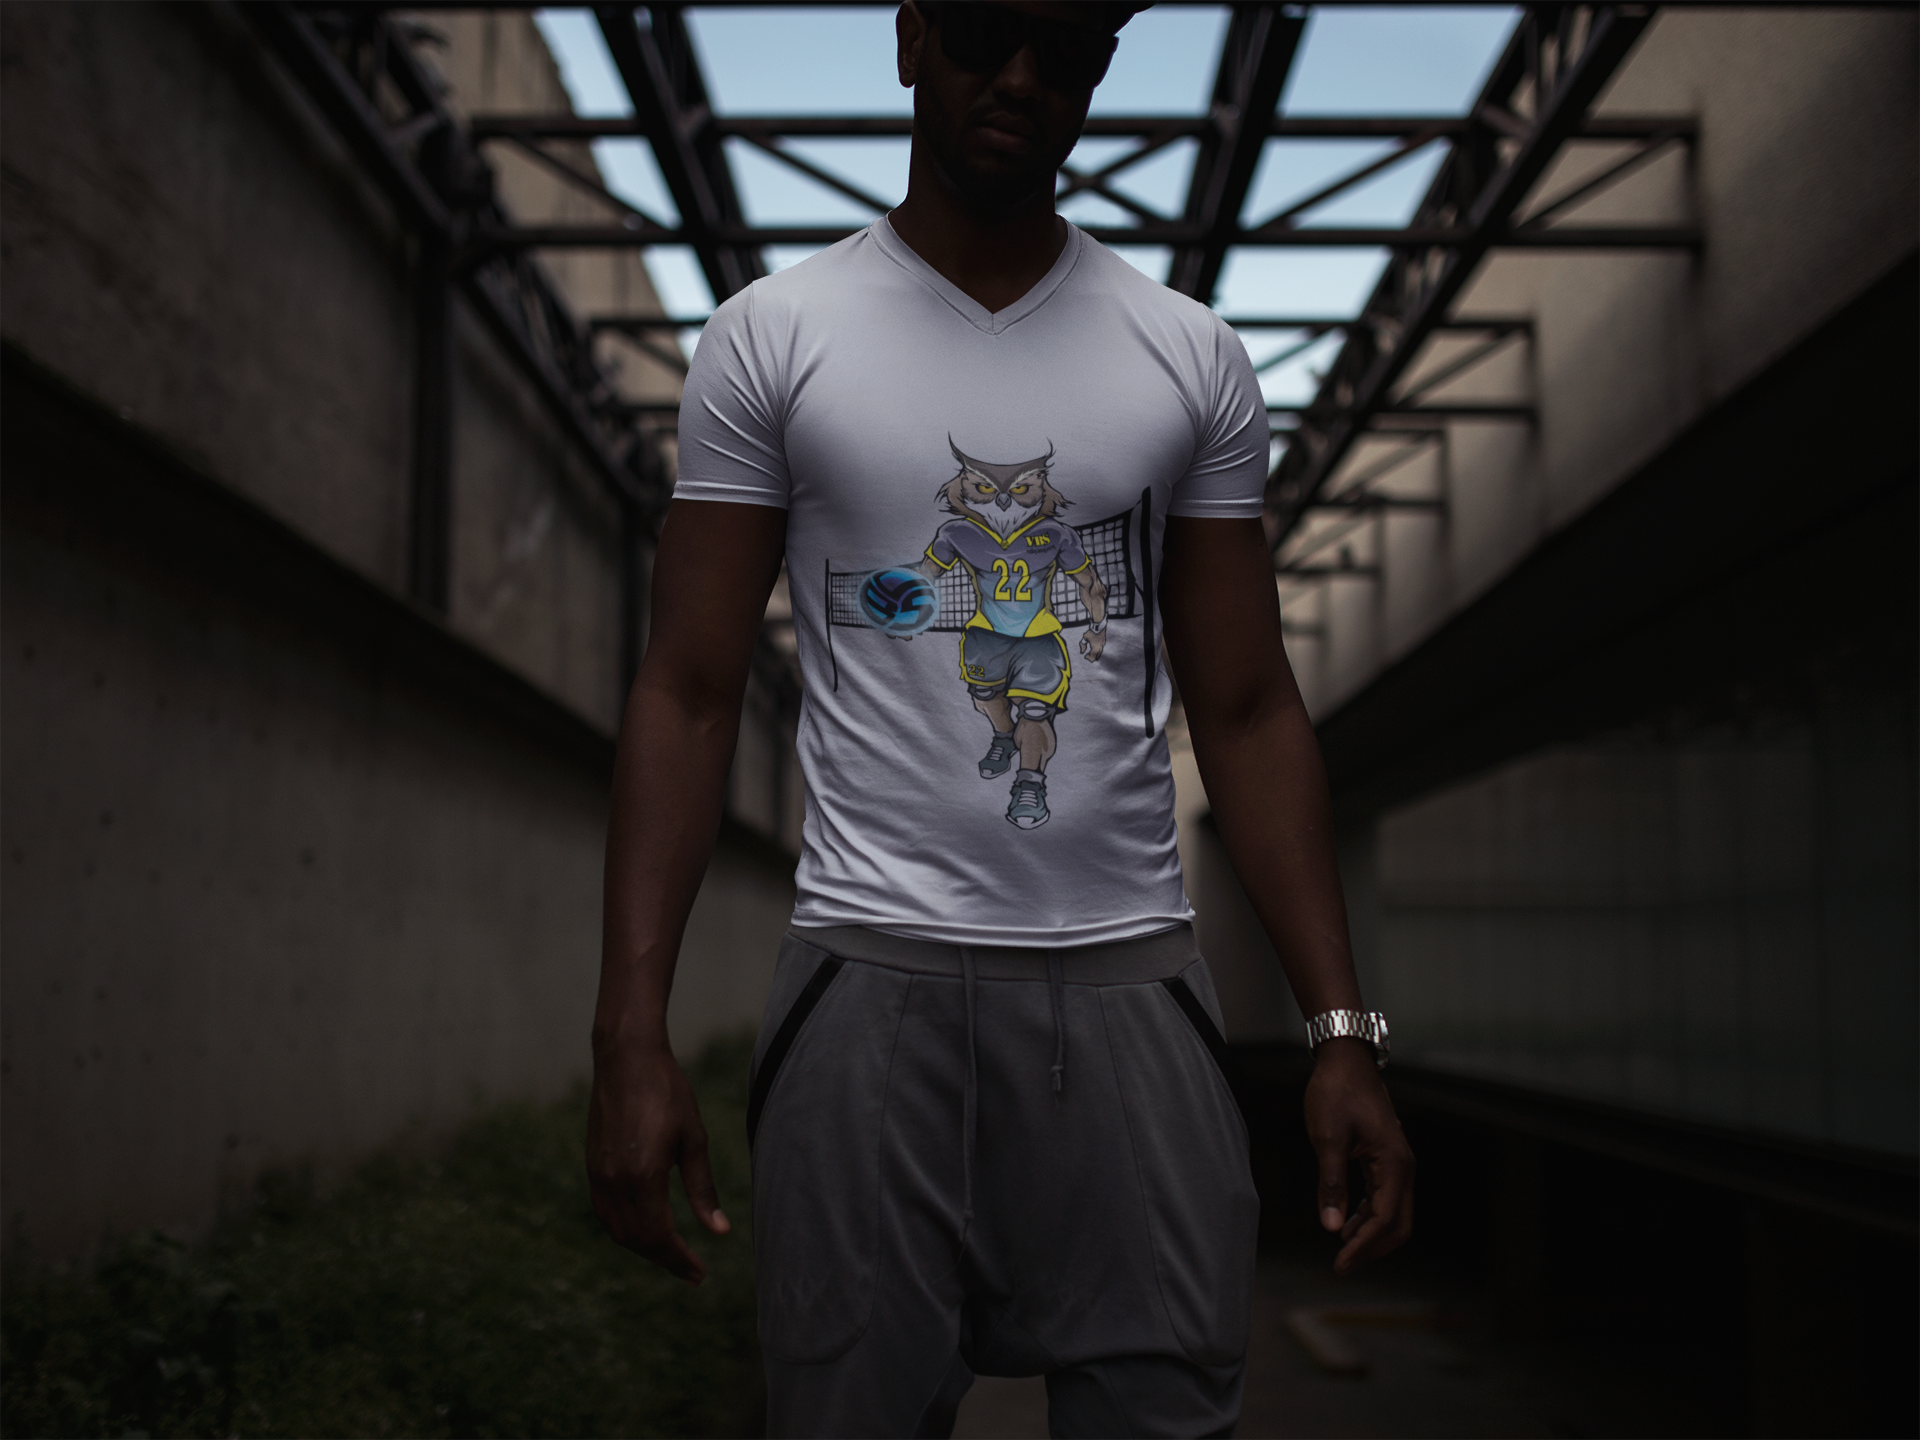 I know you're going to love the new Volleybragswag collection of beast inspired designs like the owl t shirts on 100% cotton volleyball shirts, hoodies and lots of other swag.